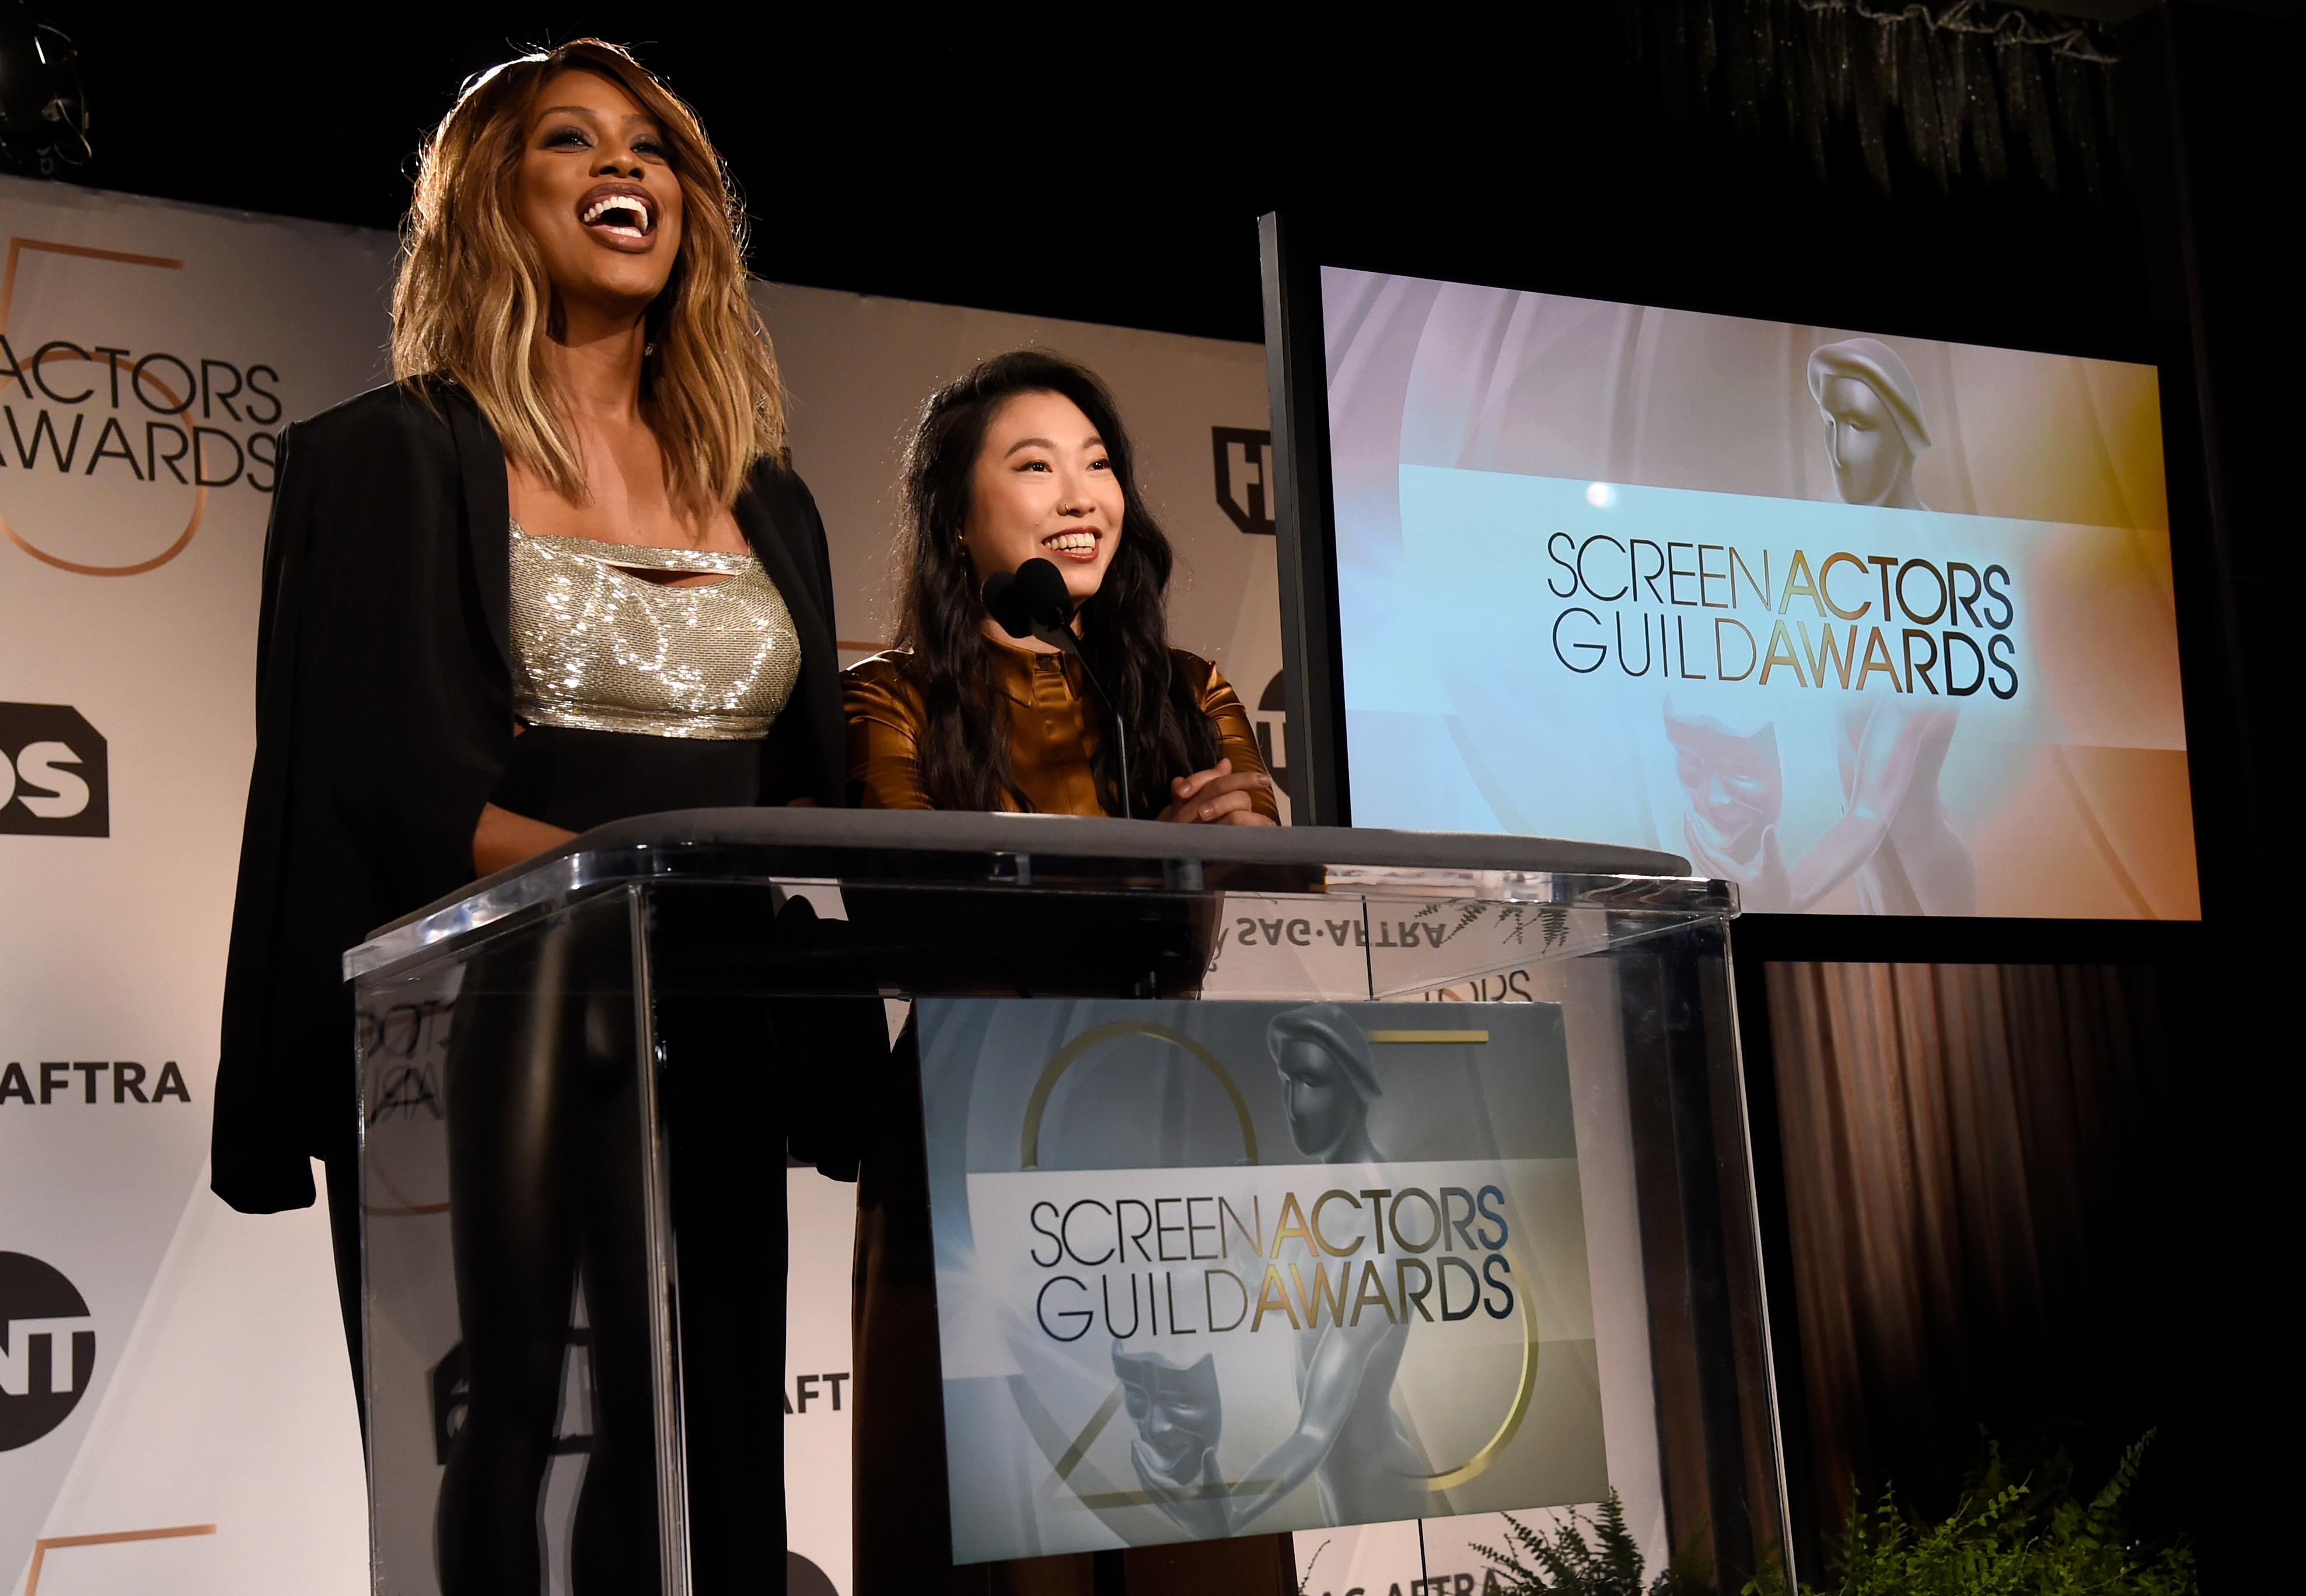 Presenters Laverne Cox, left, and Awkwafina announce nominations for the 25th annual Screen Actors Guild Awards at the Pacific Design Center on Wednesday, Dec. 12, 2018, in West Hollywood, Calif. (Photo by Chris Pizzello/Invision/AP)